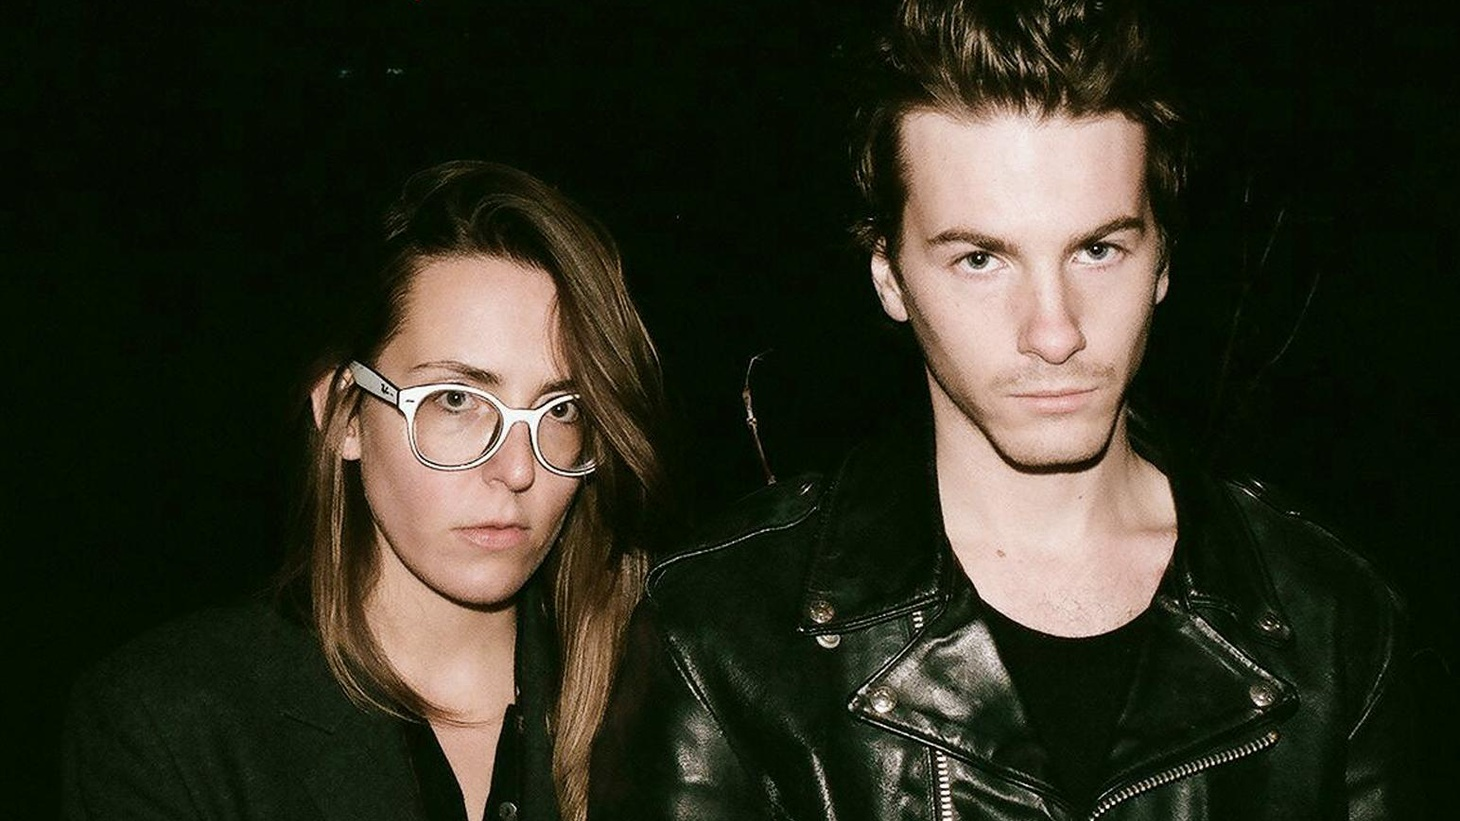 Toronto-based duo Trust create spooky dance music evoking a sexy and mysterious vibe on their full length debut...